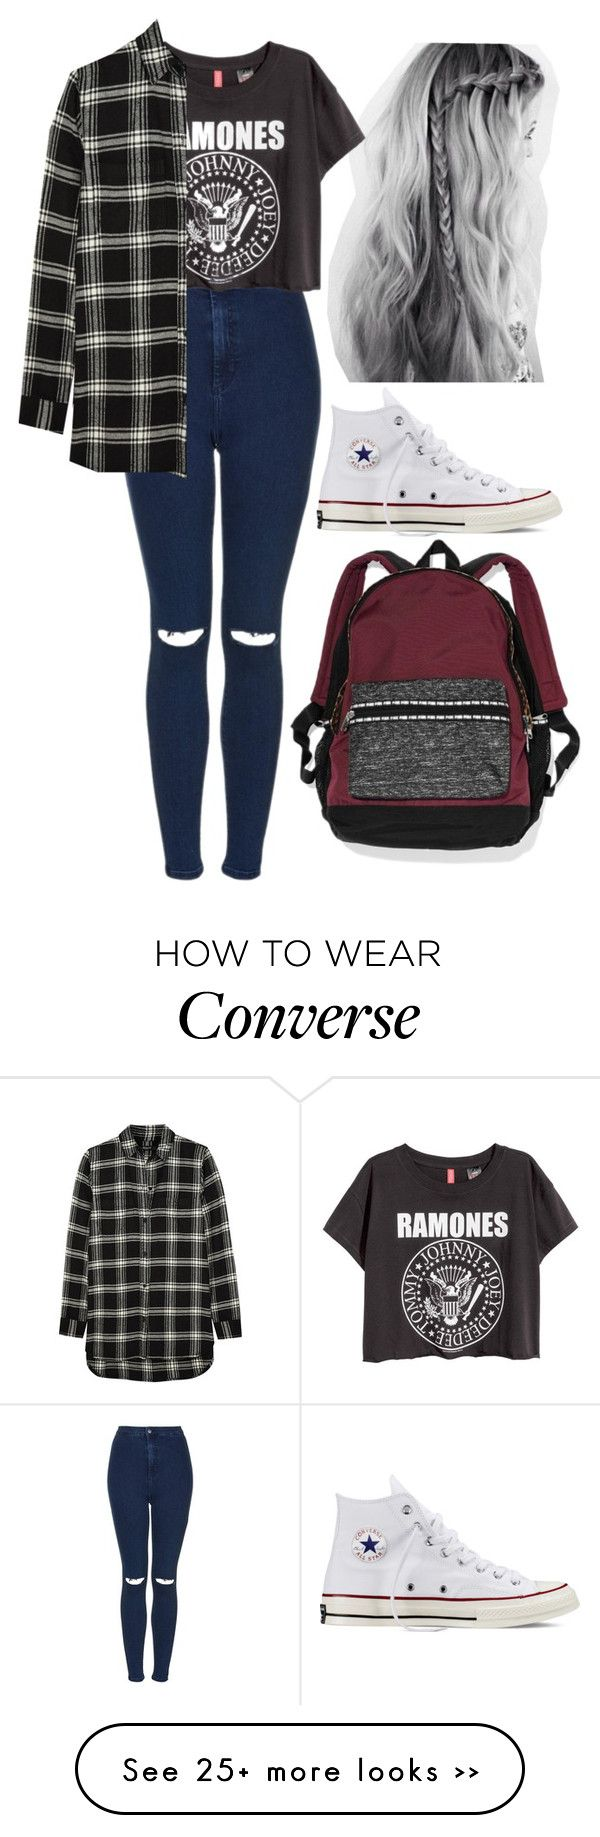 """""""Sin título #781"""" by candiibella on Polyvore featuring Topshop, Converse, Madewell and Victoria's Secret"""